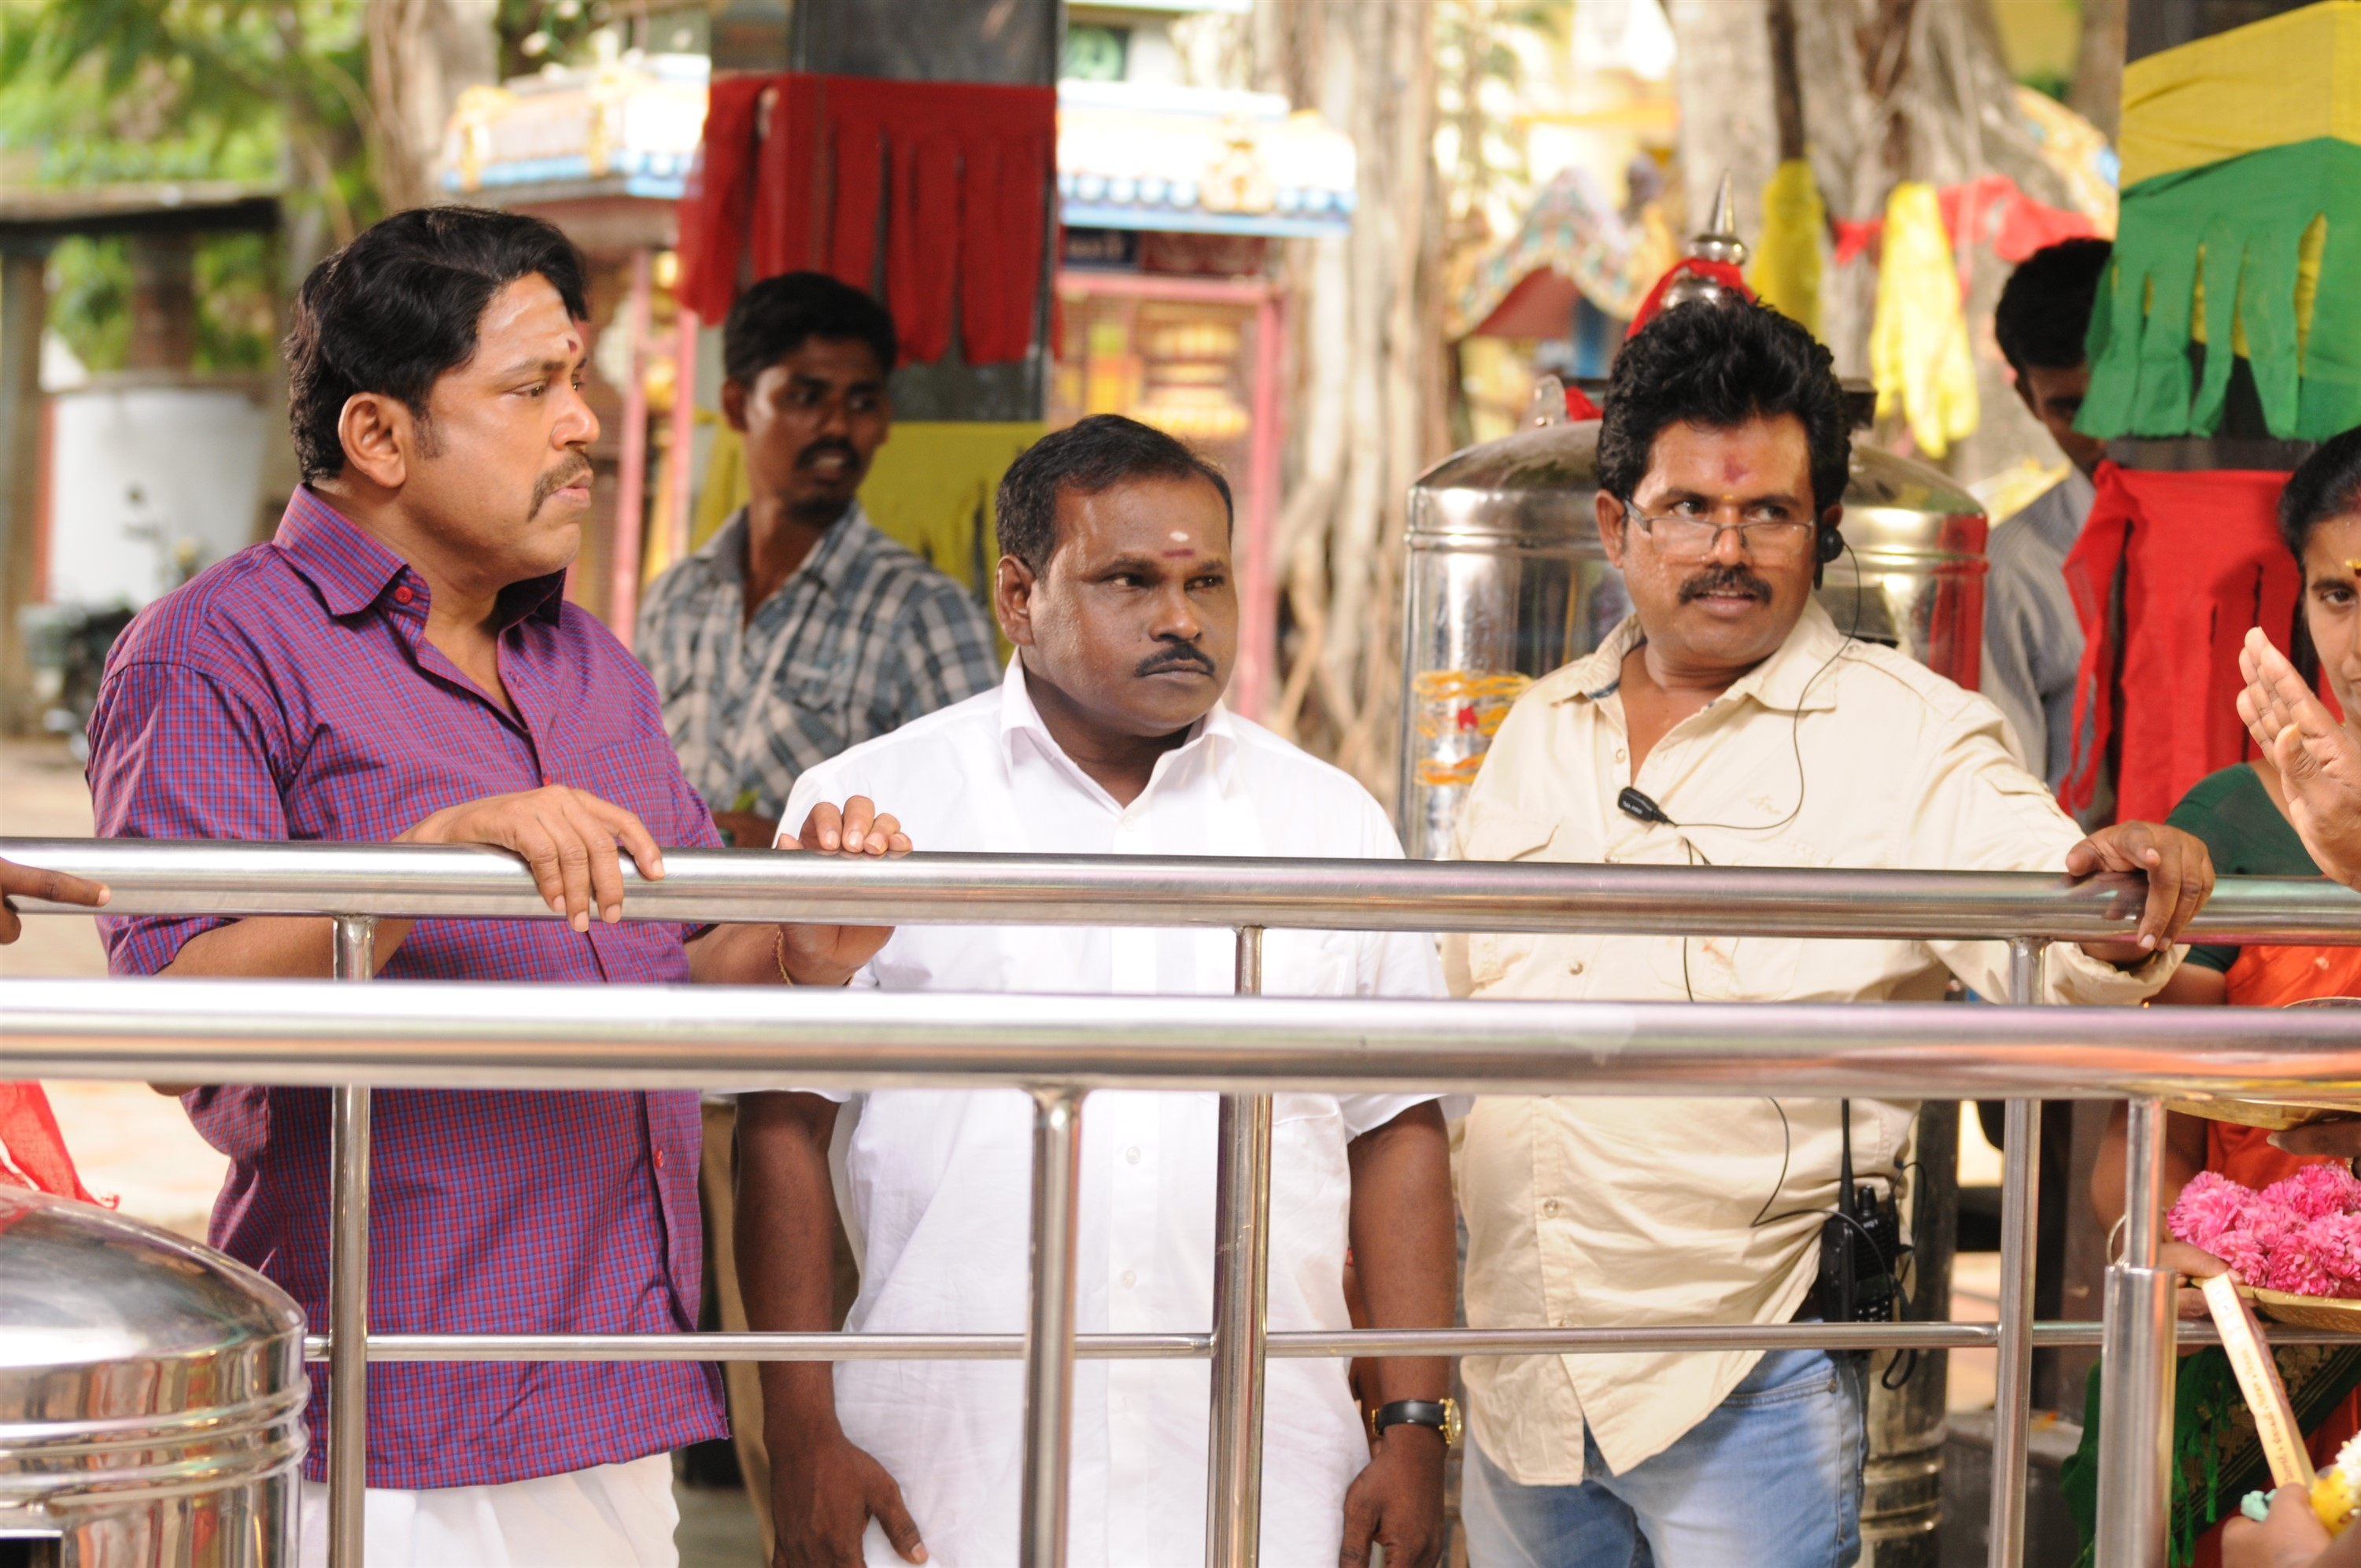 Thambi Ramaiah & George @ Thanni Vandi Movie Stills HD